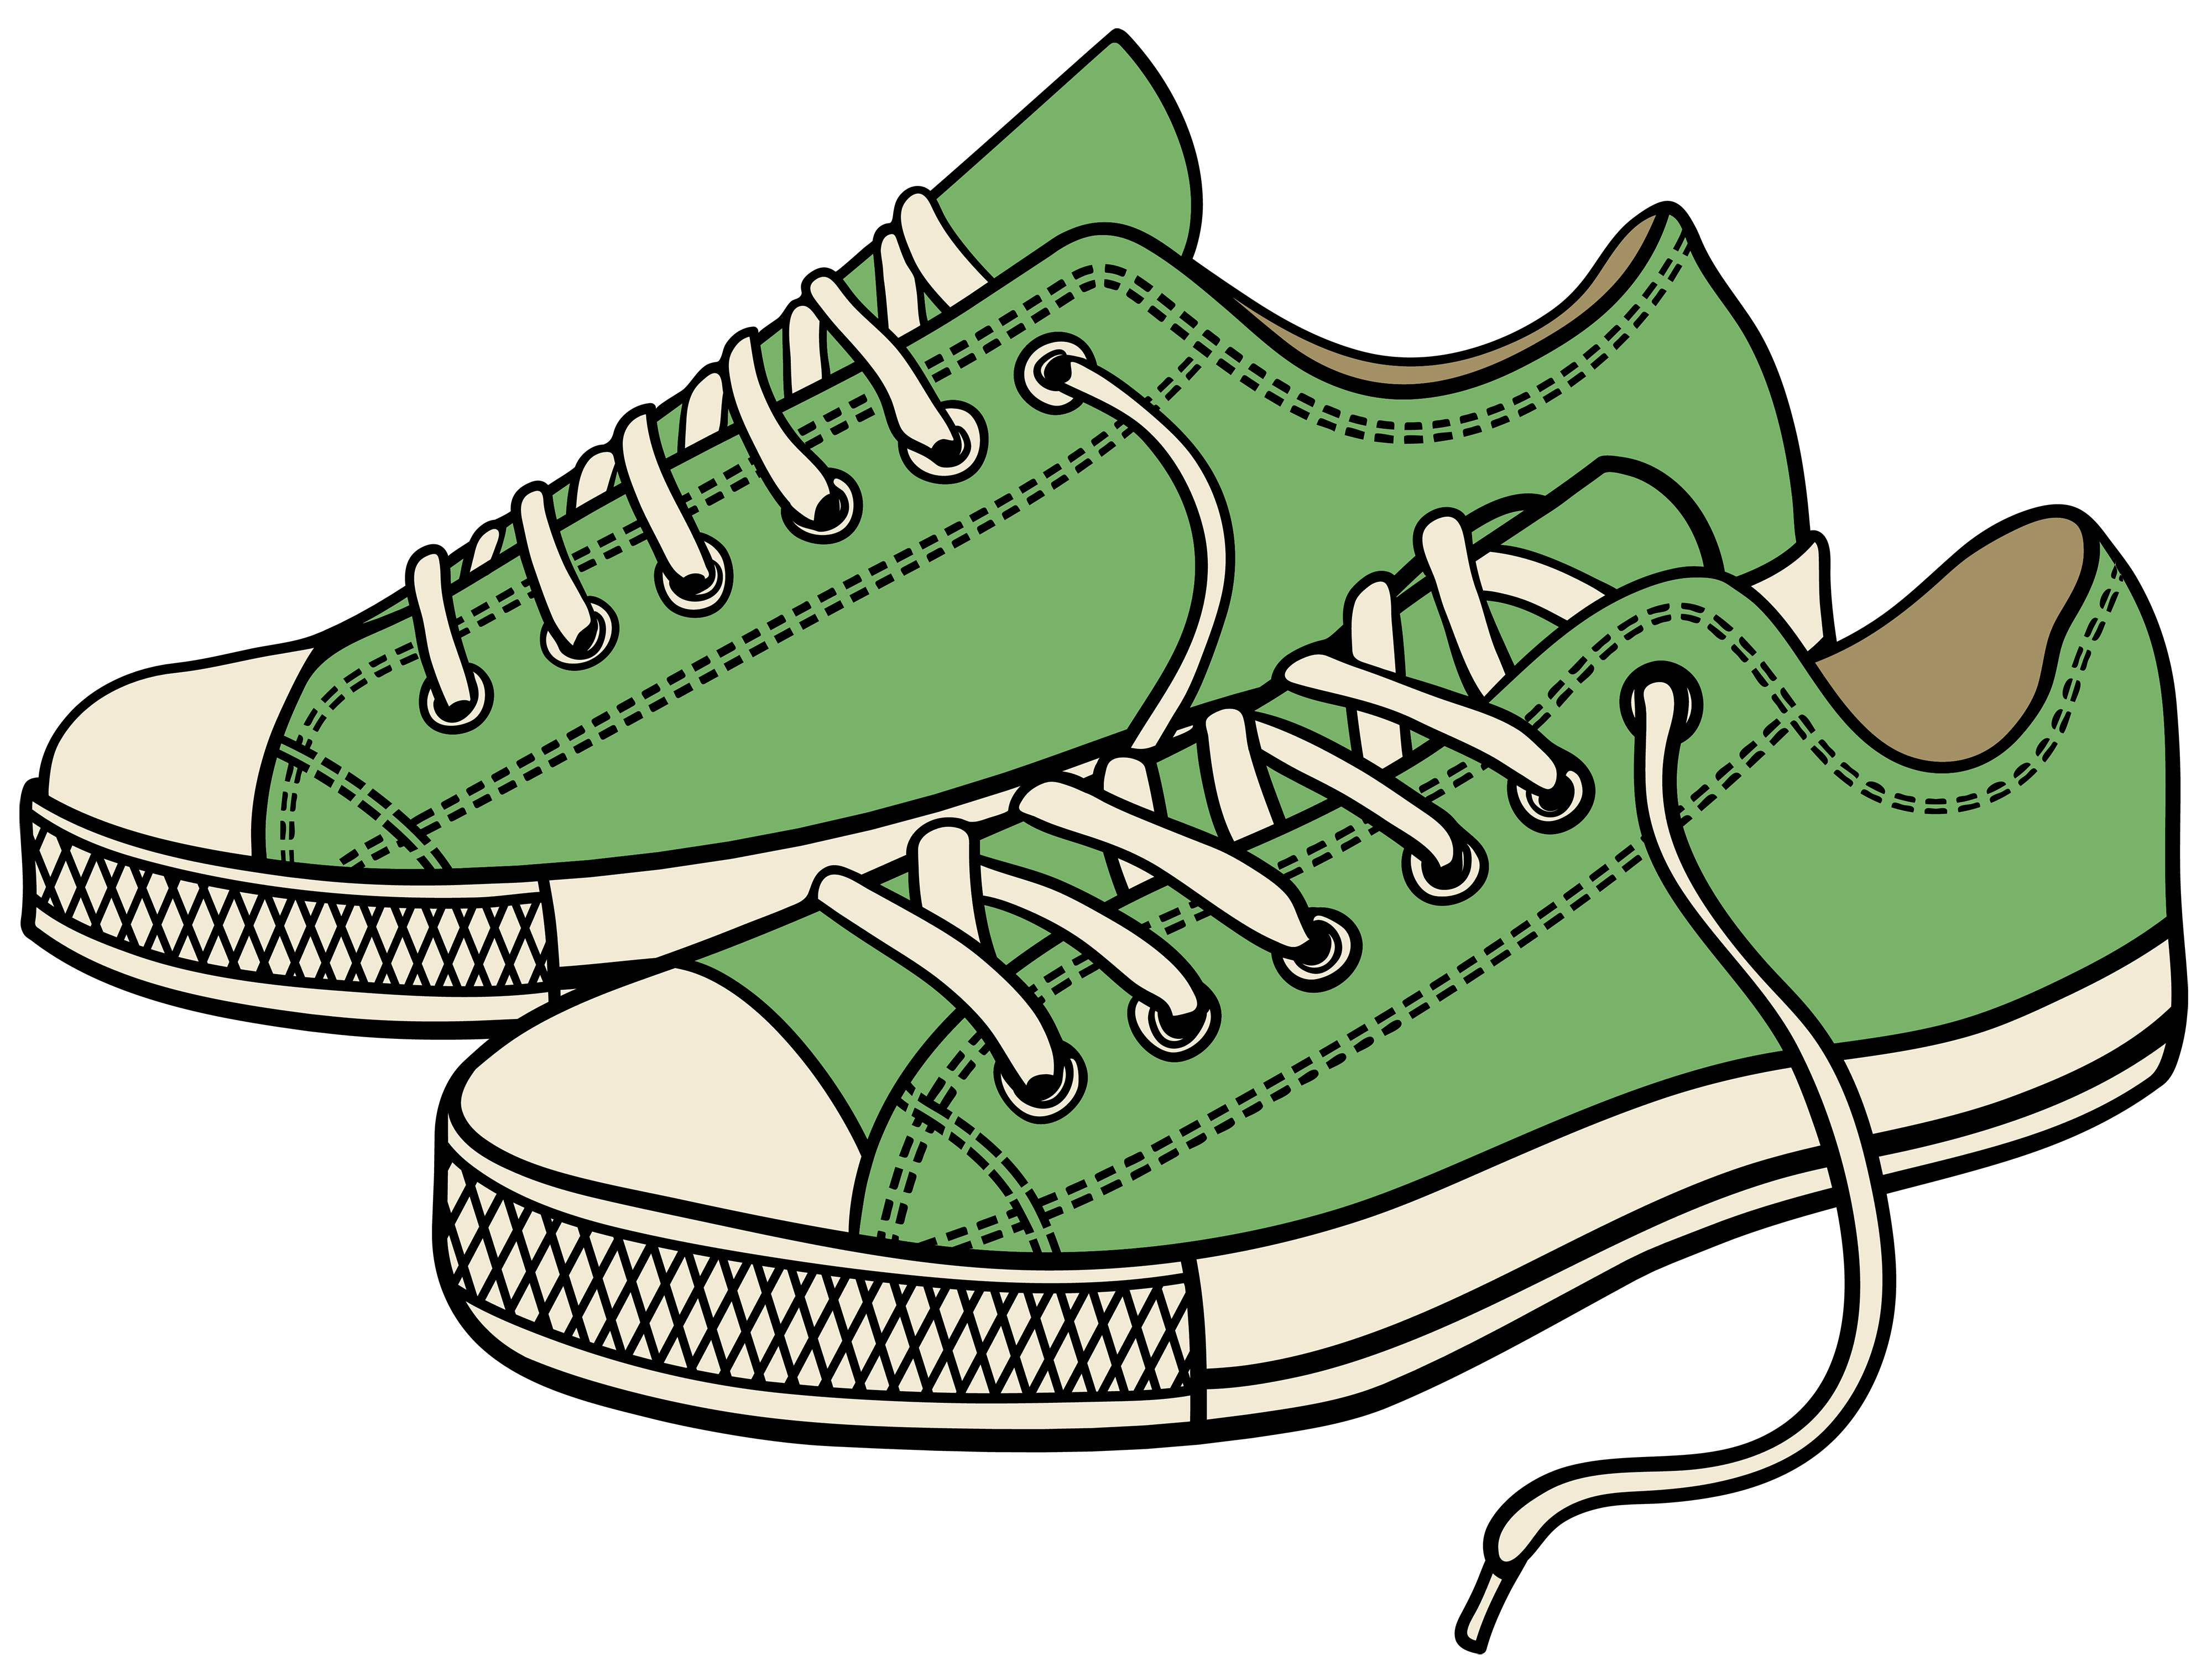 graphic freeuse library Converse clipart. Tennis shoe free on